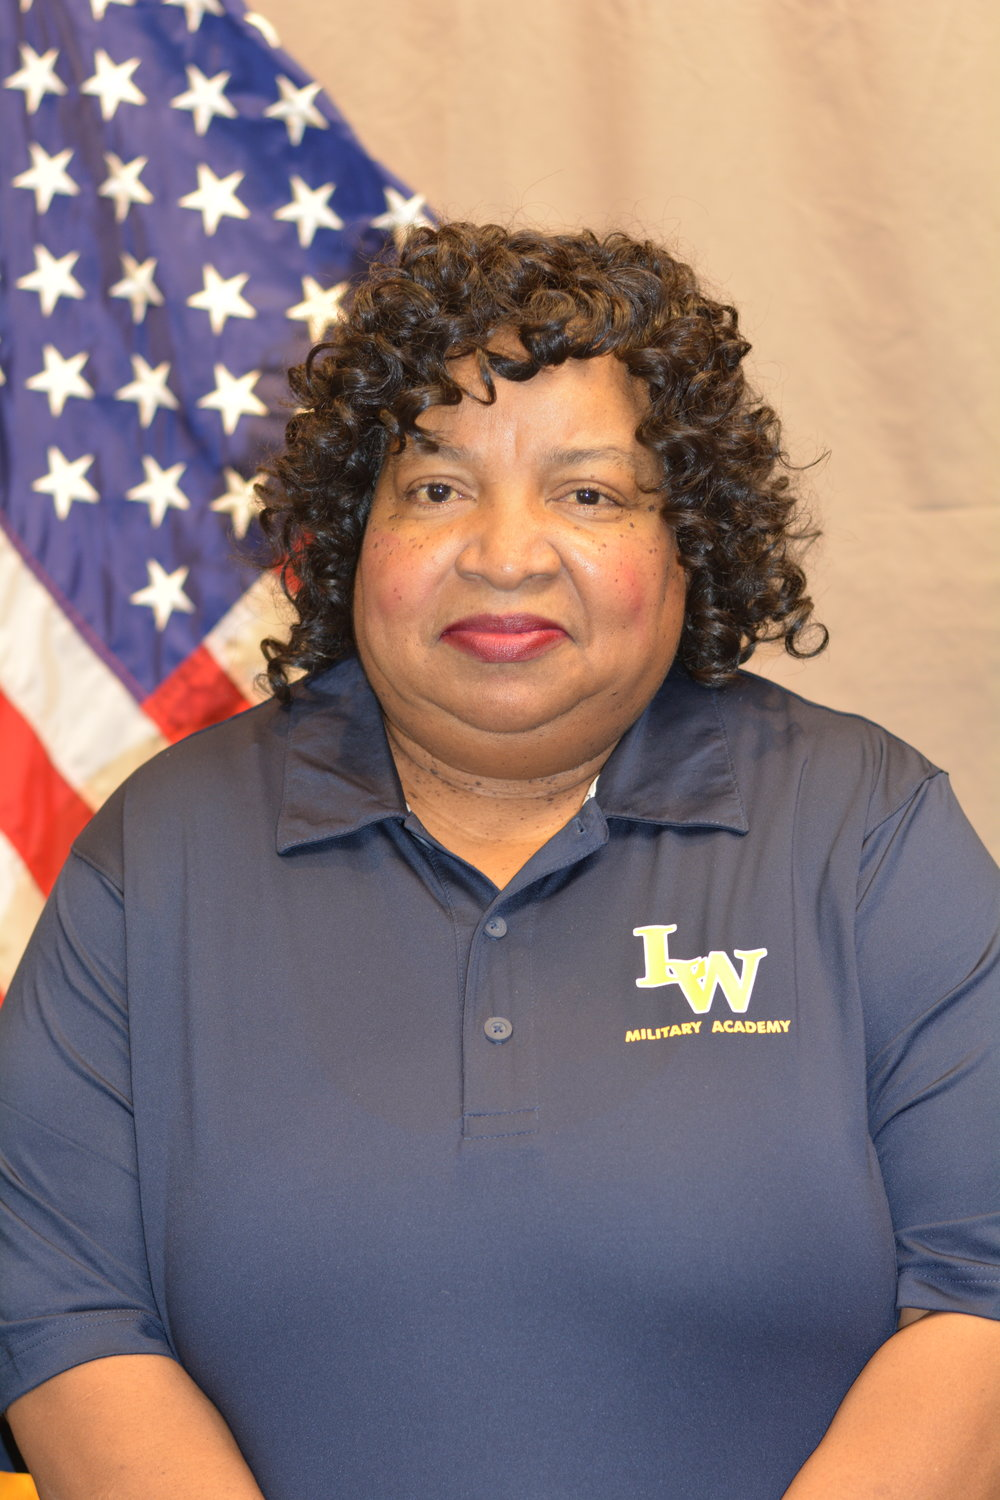 Verlia Townsend    Laundry Presser     Hometown : Tallassee, AL  Hobbies:   Cooking, Caring for people, listening to music walking nature trails and studying trees.  Family:  3 children and 4 grand children Started at LWMA in Aug 2016